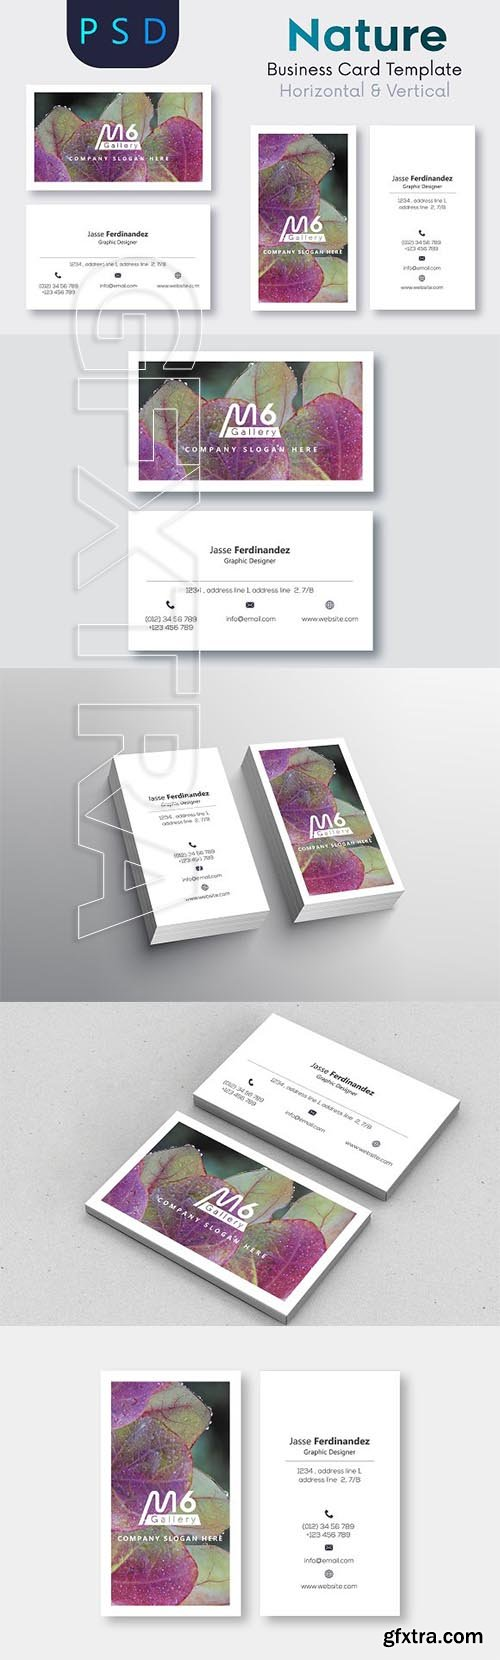 Creativemarket nature business card template s52 2218991 vector creativemarket nature business card template s52 2218991 reheart Images